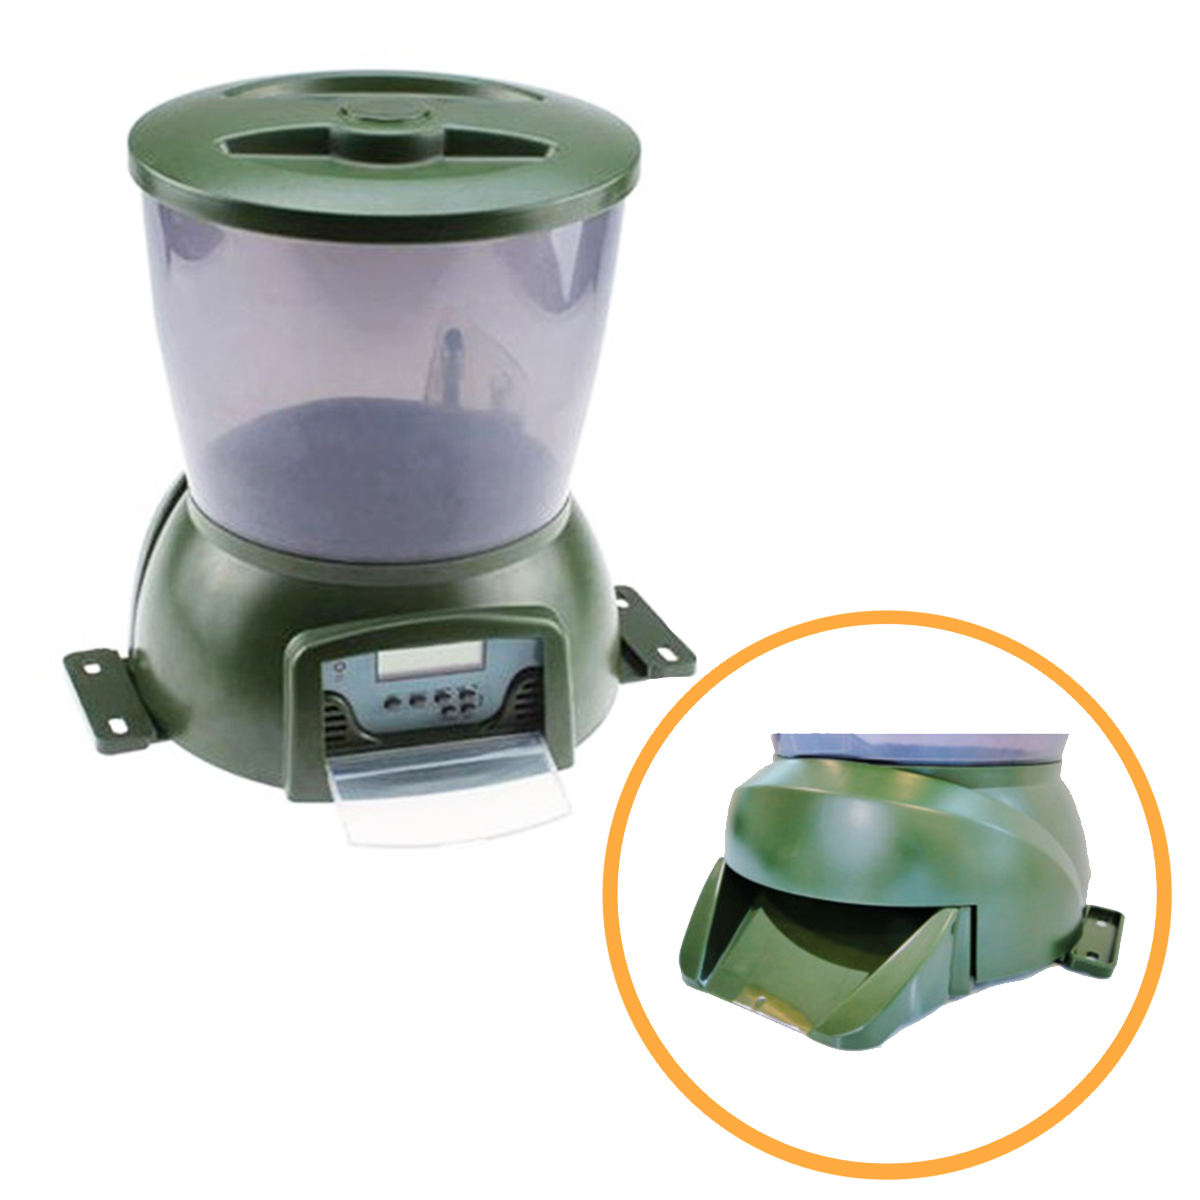 Pisces automatic koi pond fish feeder for Koi fish feeder